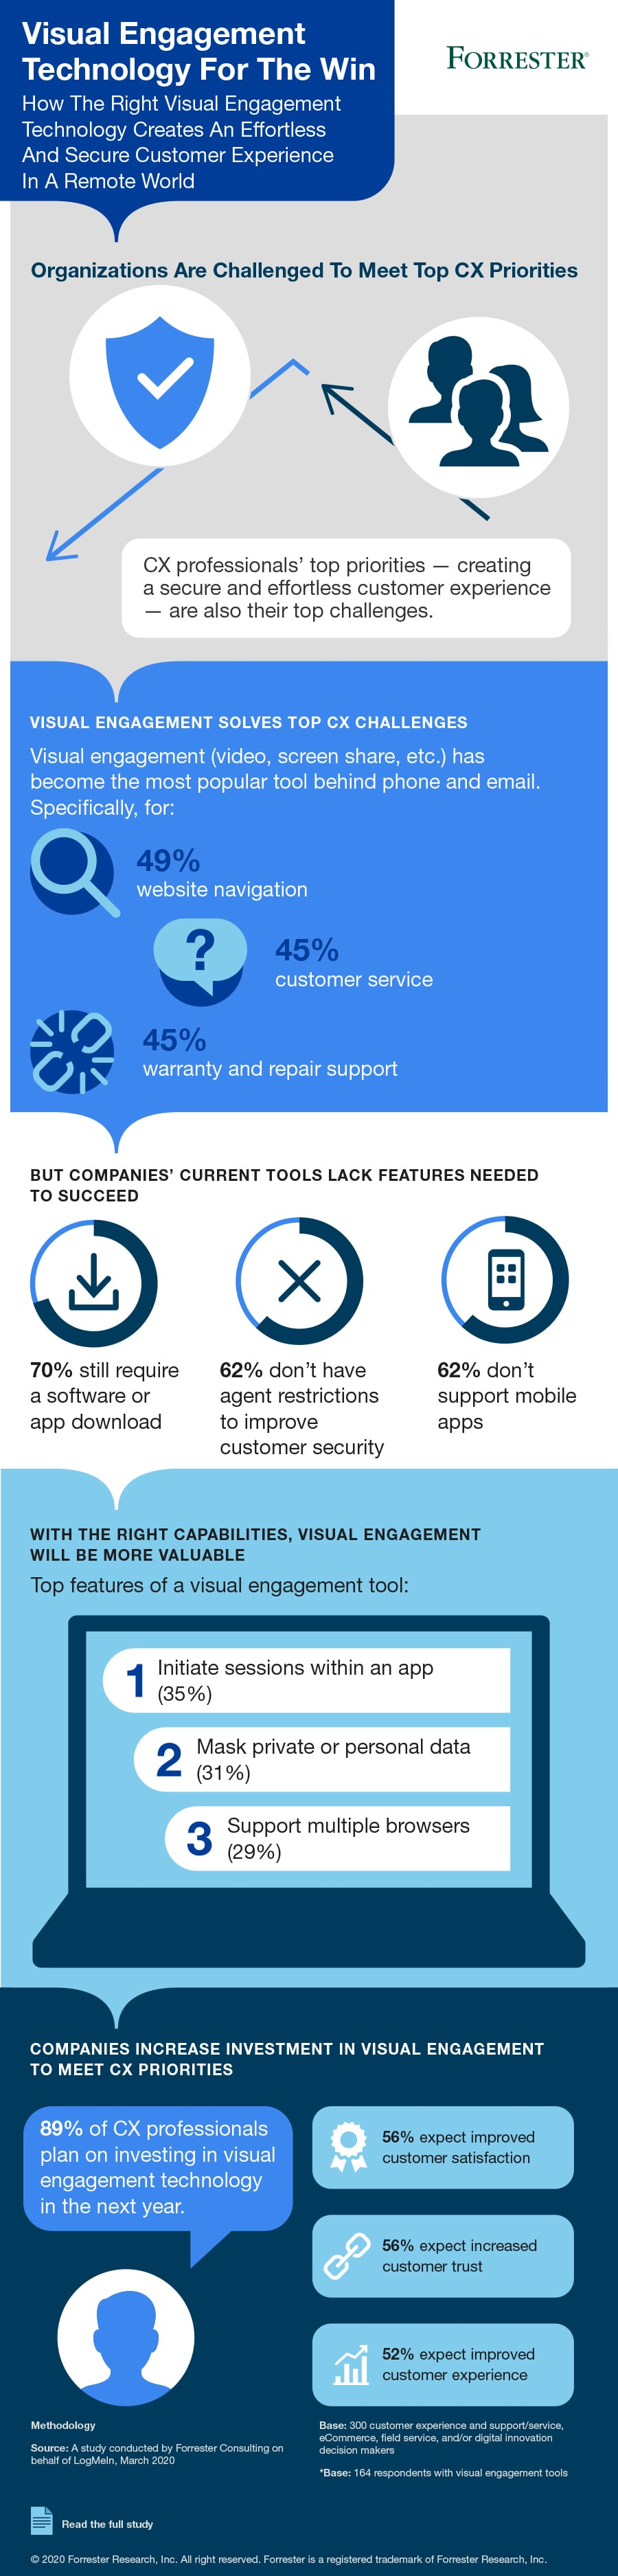 visual engagement infographic